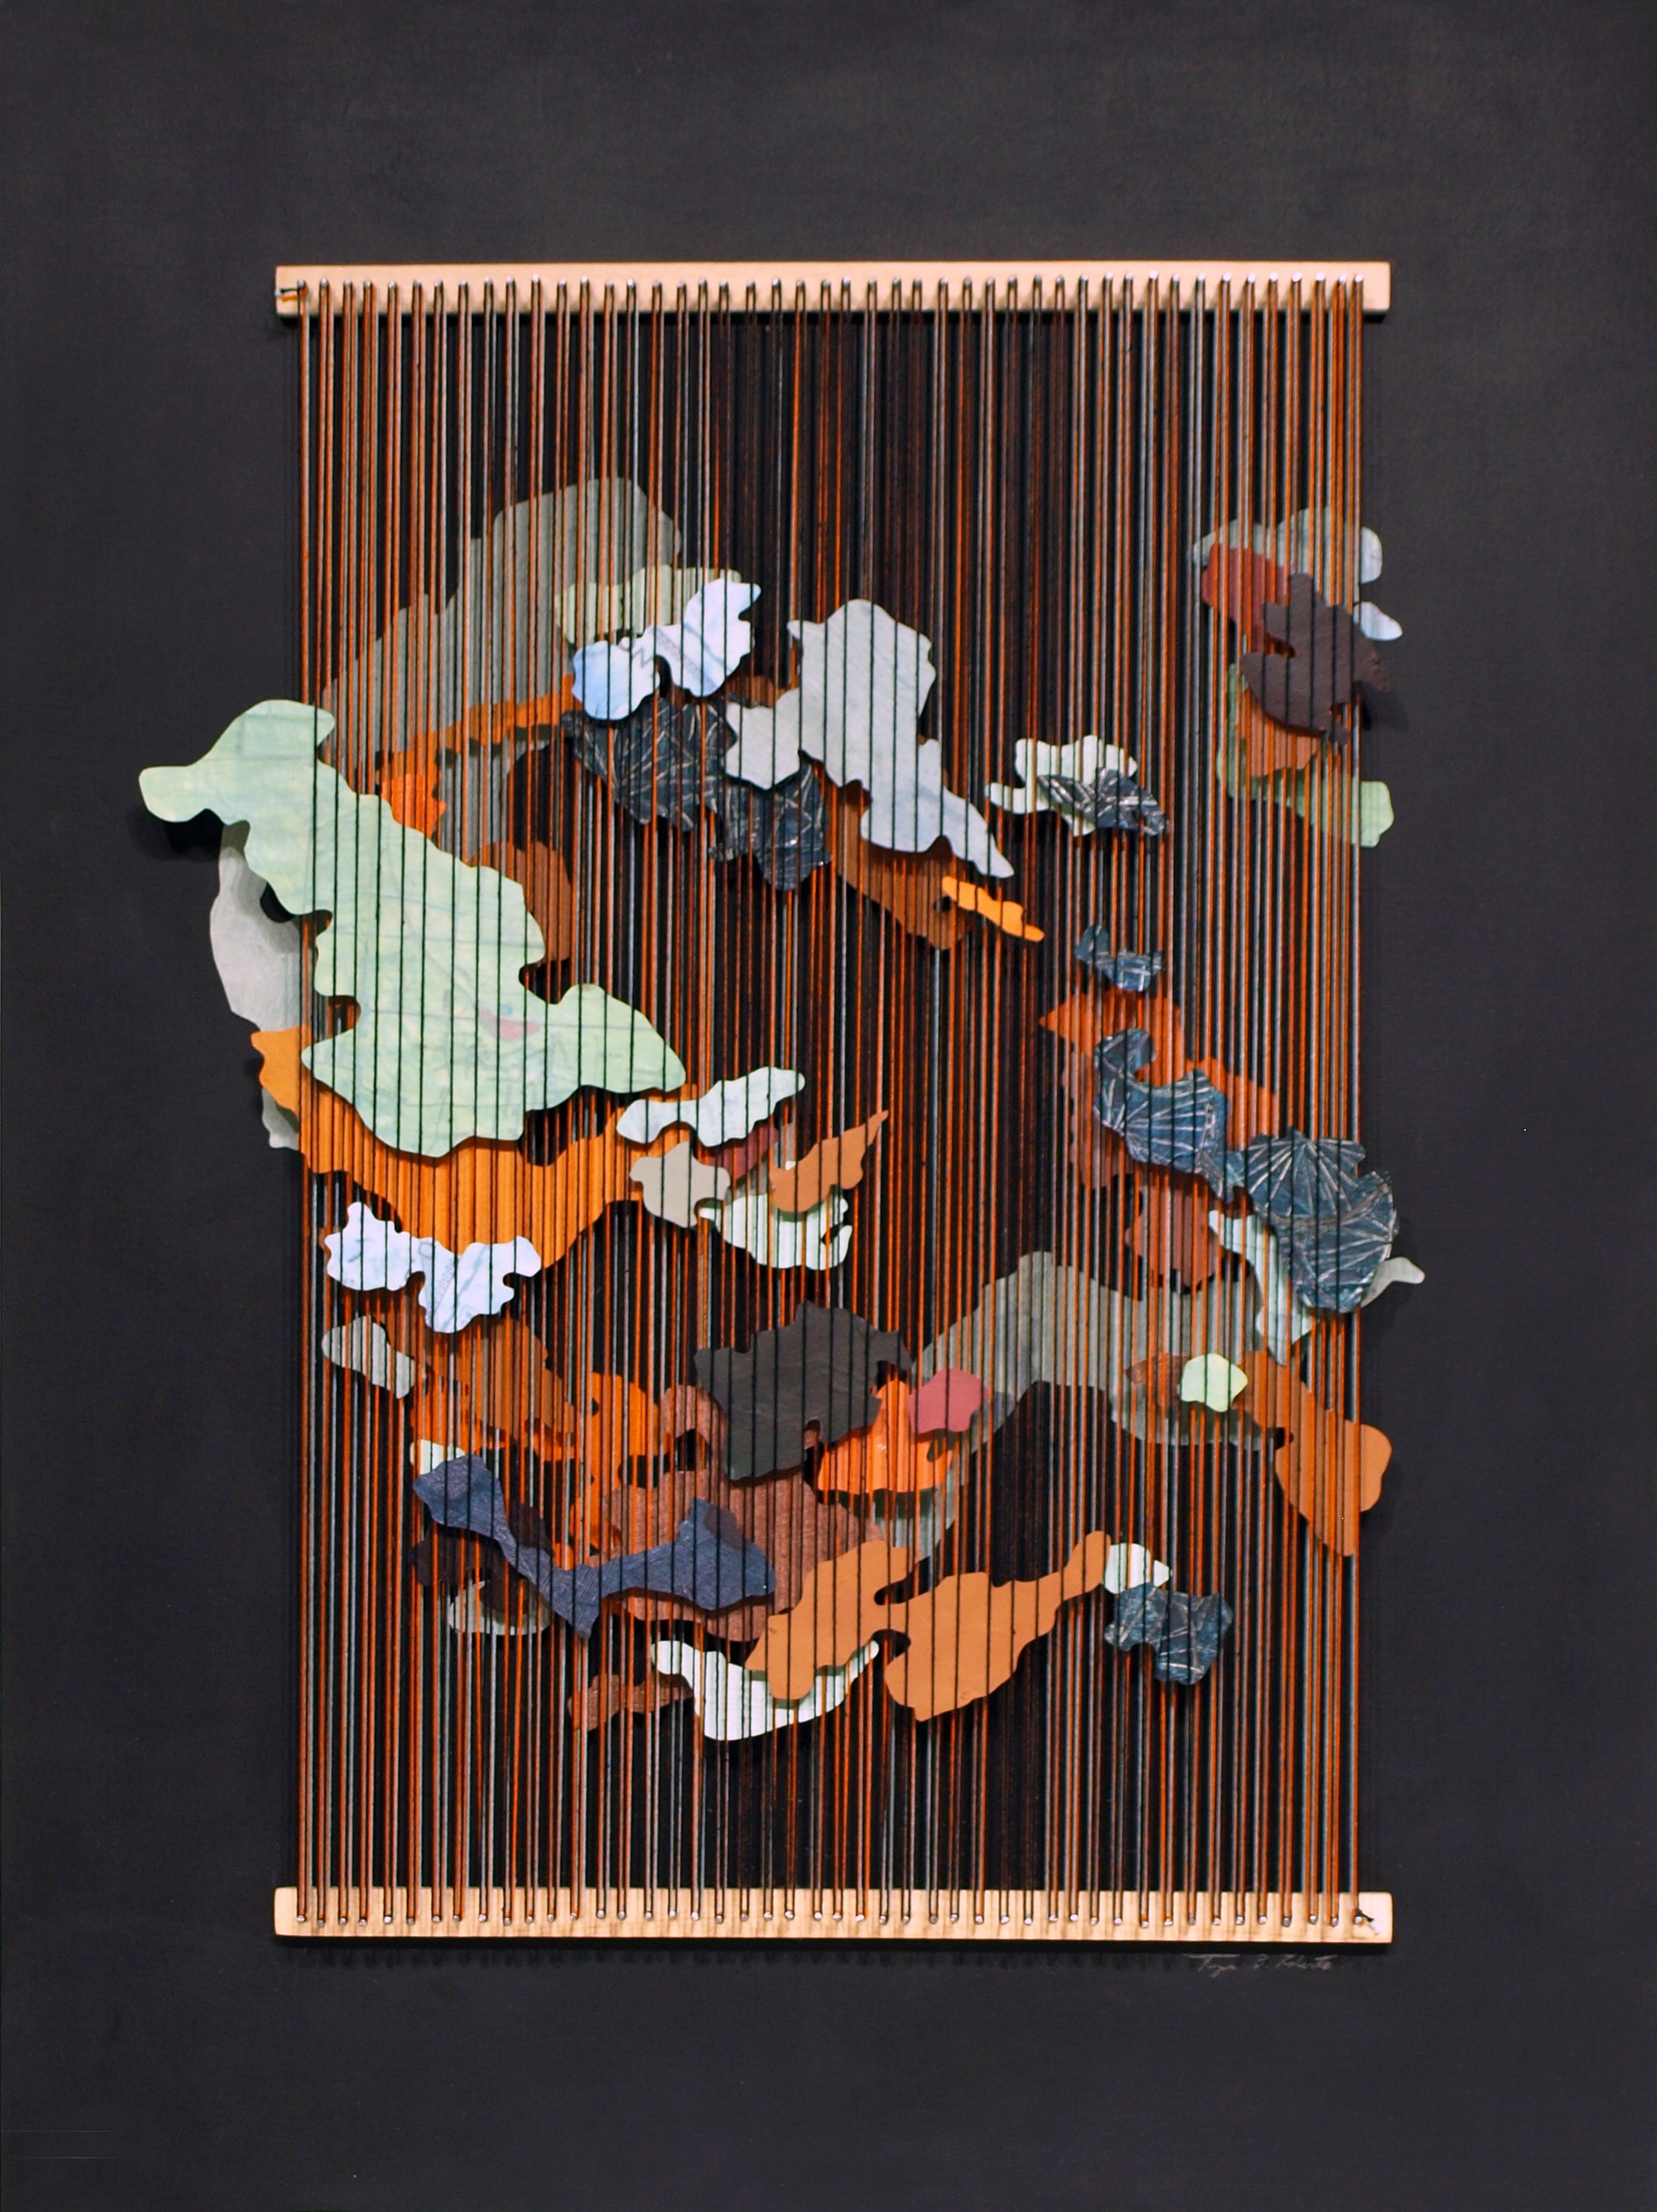 Tegan Brozyna Roberts,  Post,  2018, Painted paper, thread, nails and wood, 24 1/2 x 18 3/4 inches